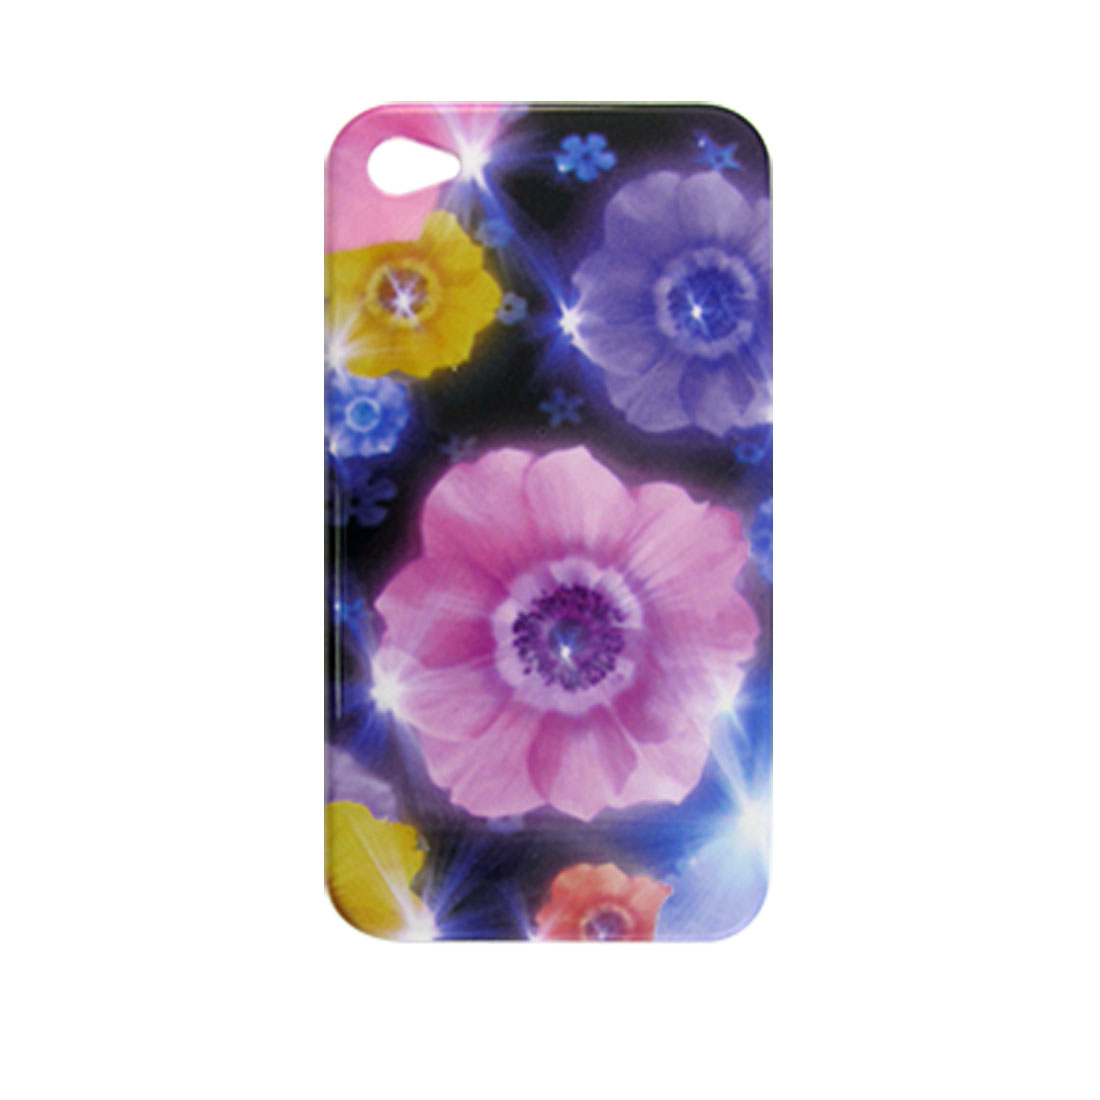 Pink Floral Hard Plastic IMD Back Case for iPhone 4 4G